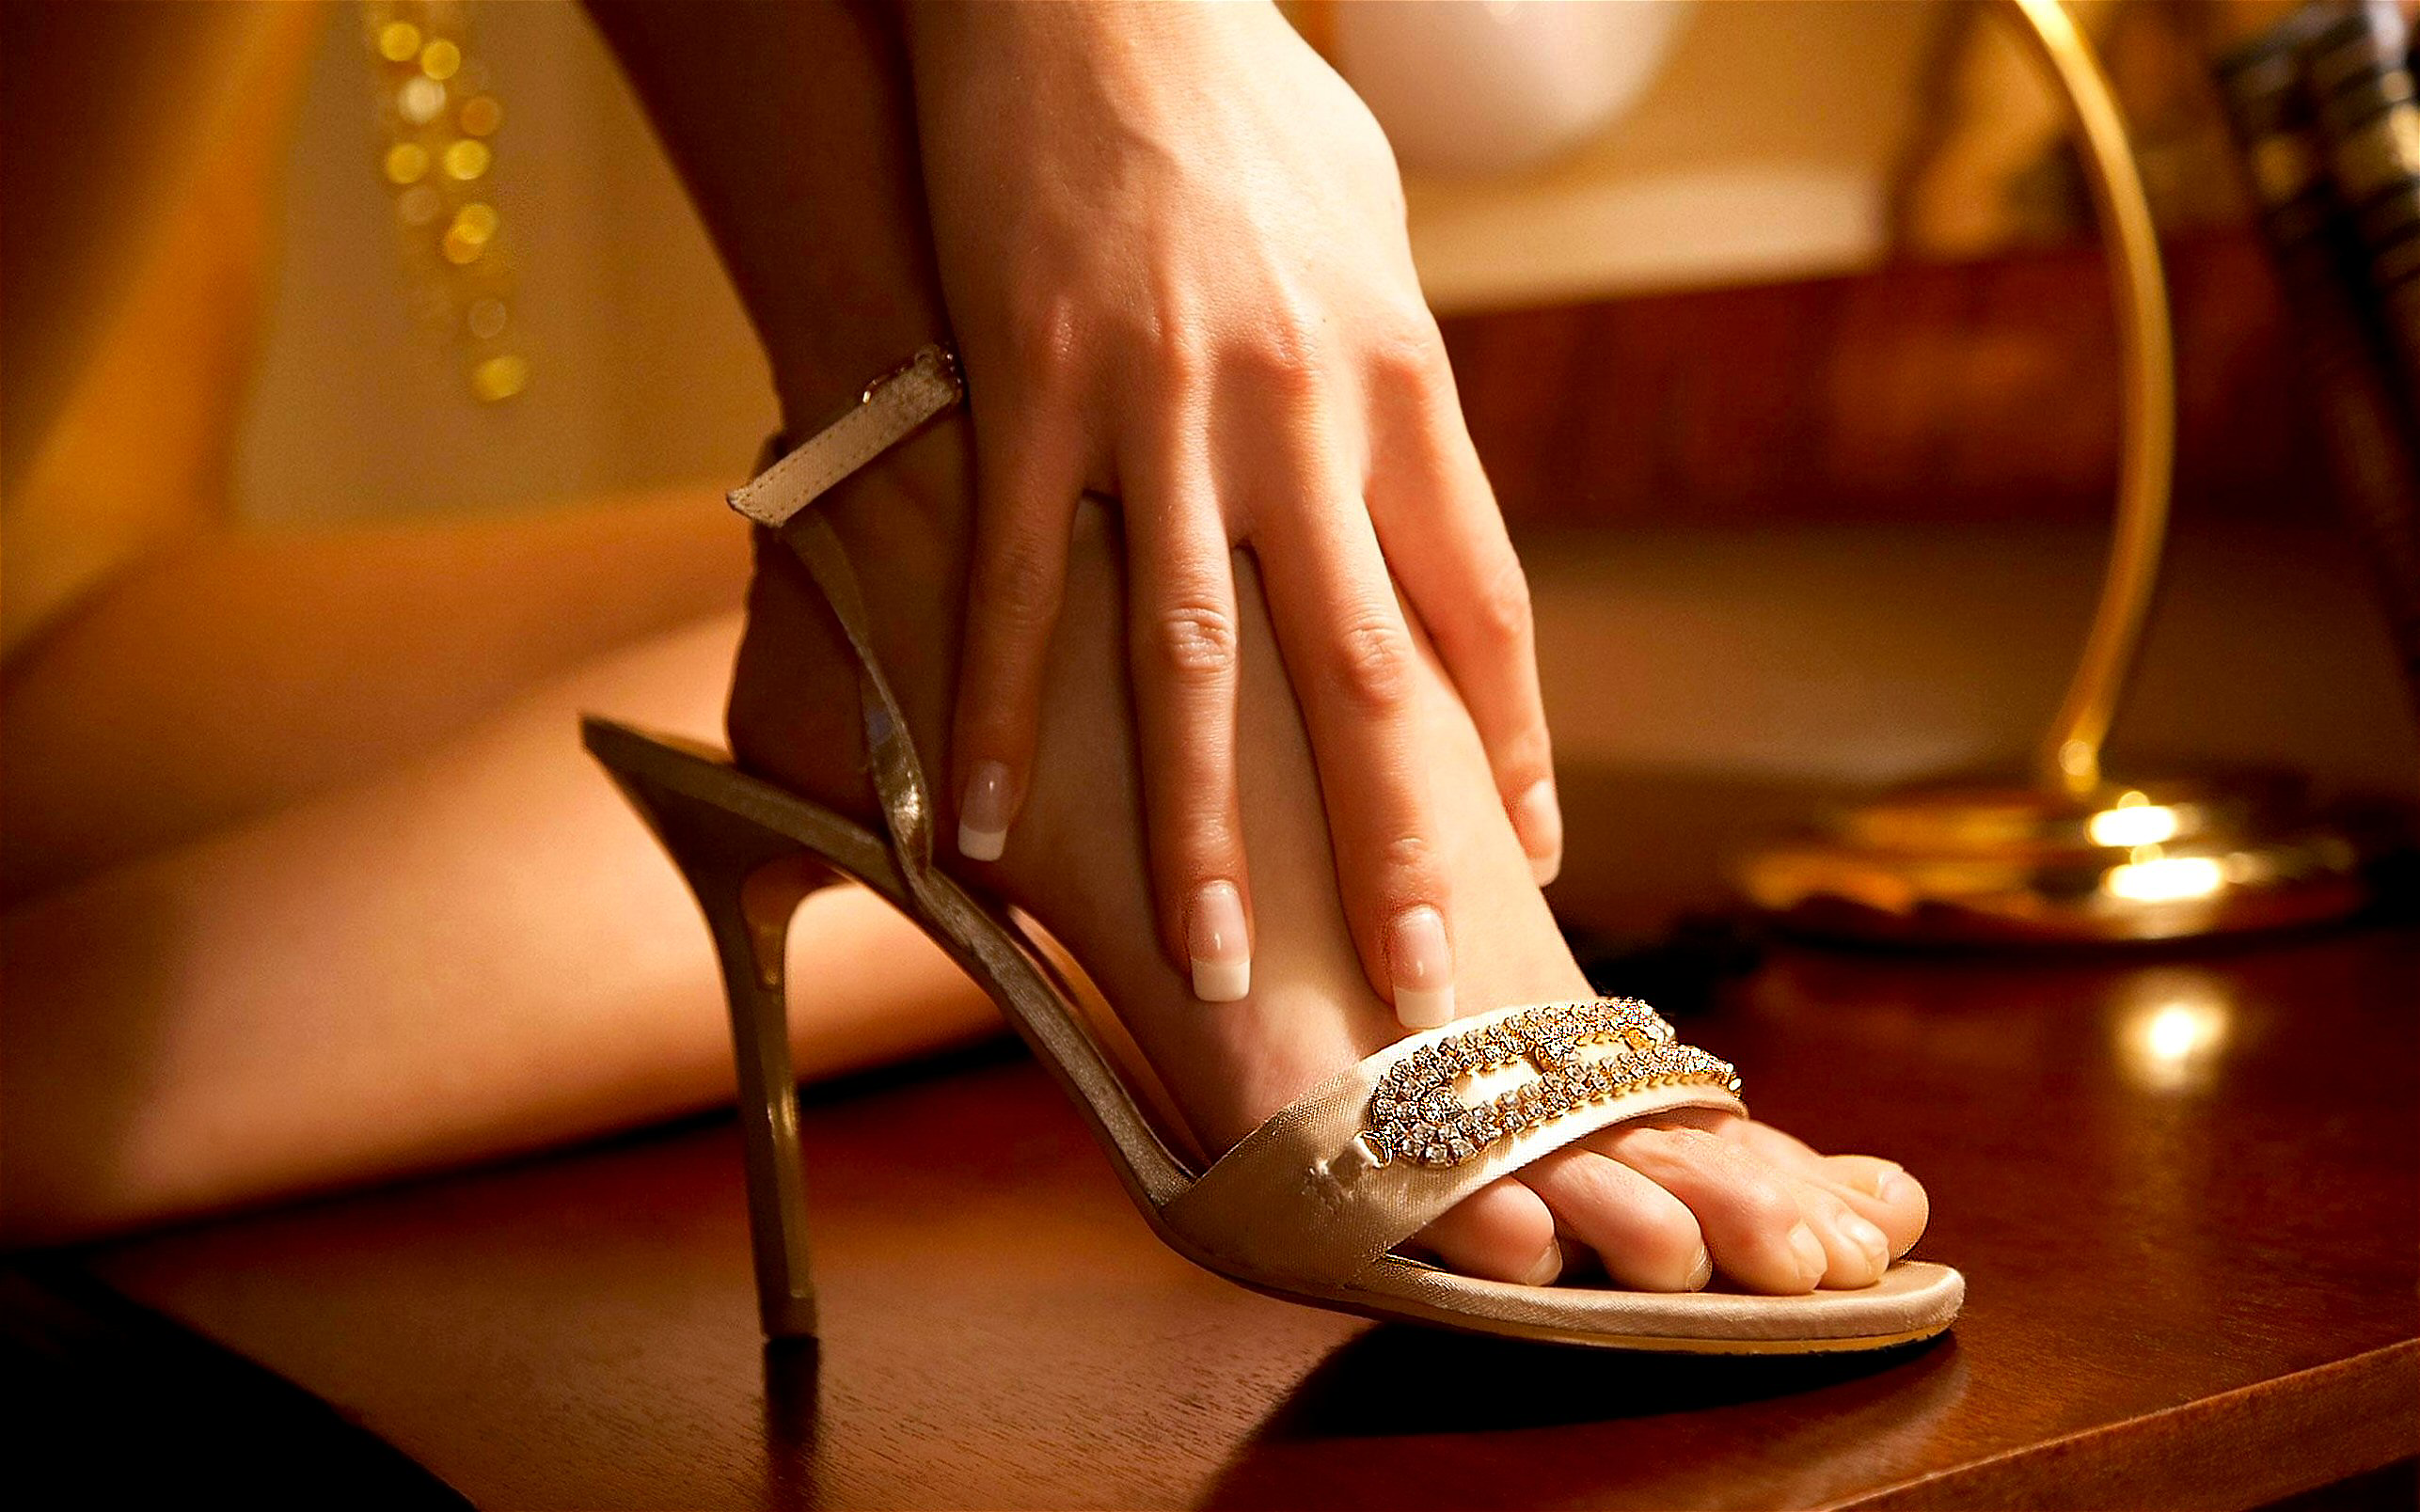 Womens feet pictures